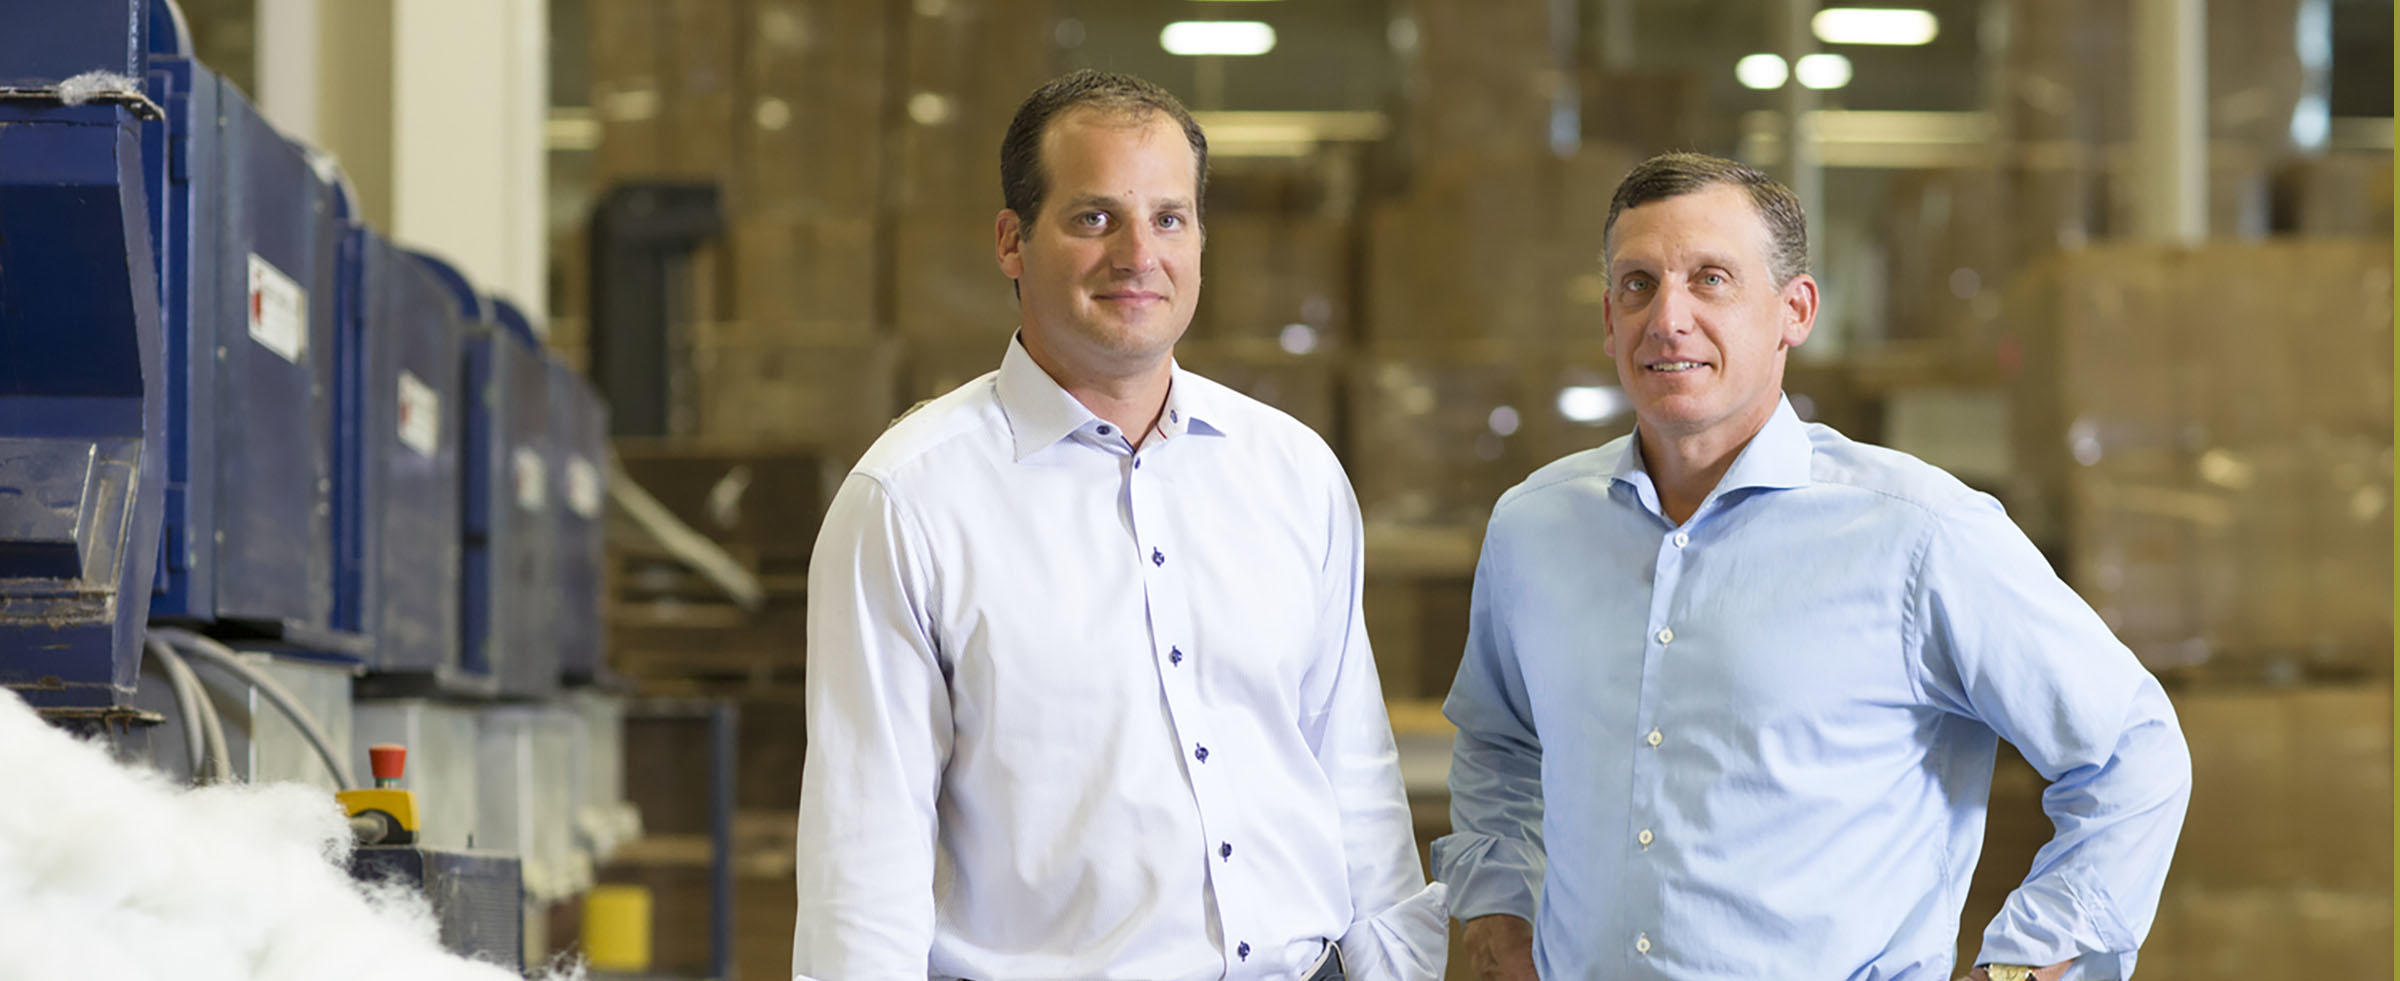 Blake Ruttenberg, executive vice president of American Textile Co., and his brother, Lance, the company's CEO, have made philanthropy through The Pittsburgh Foundation a priority for their family and their business.